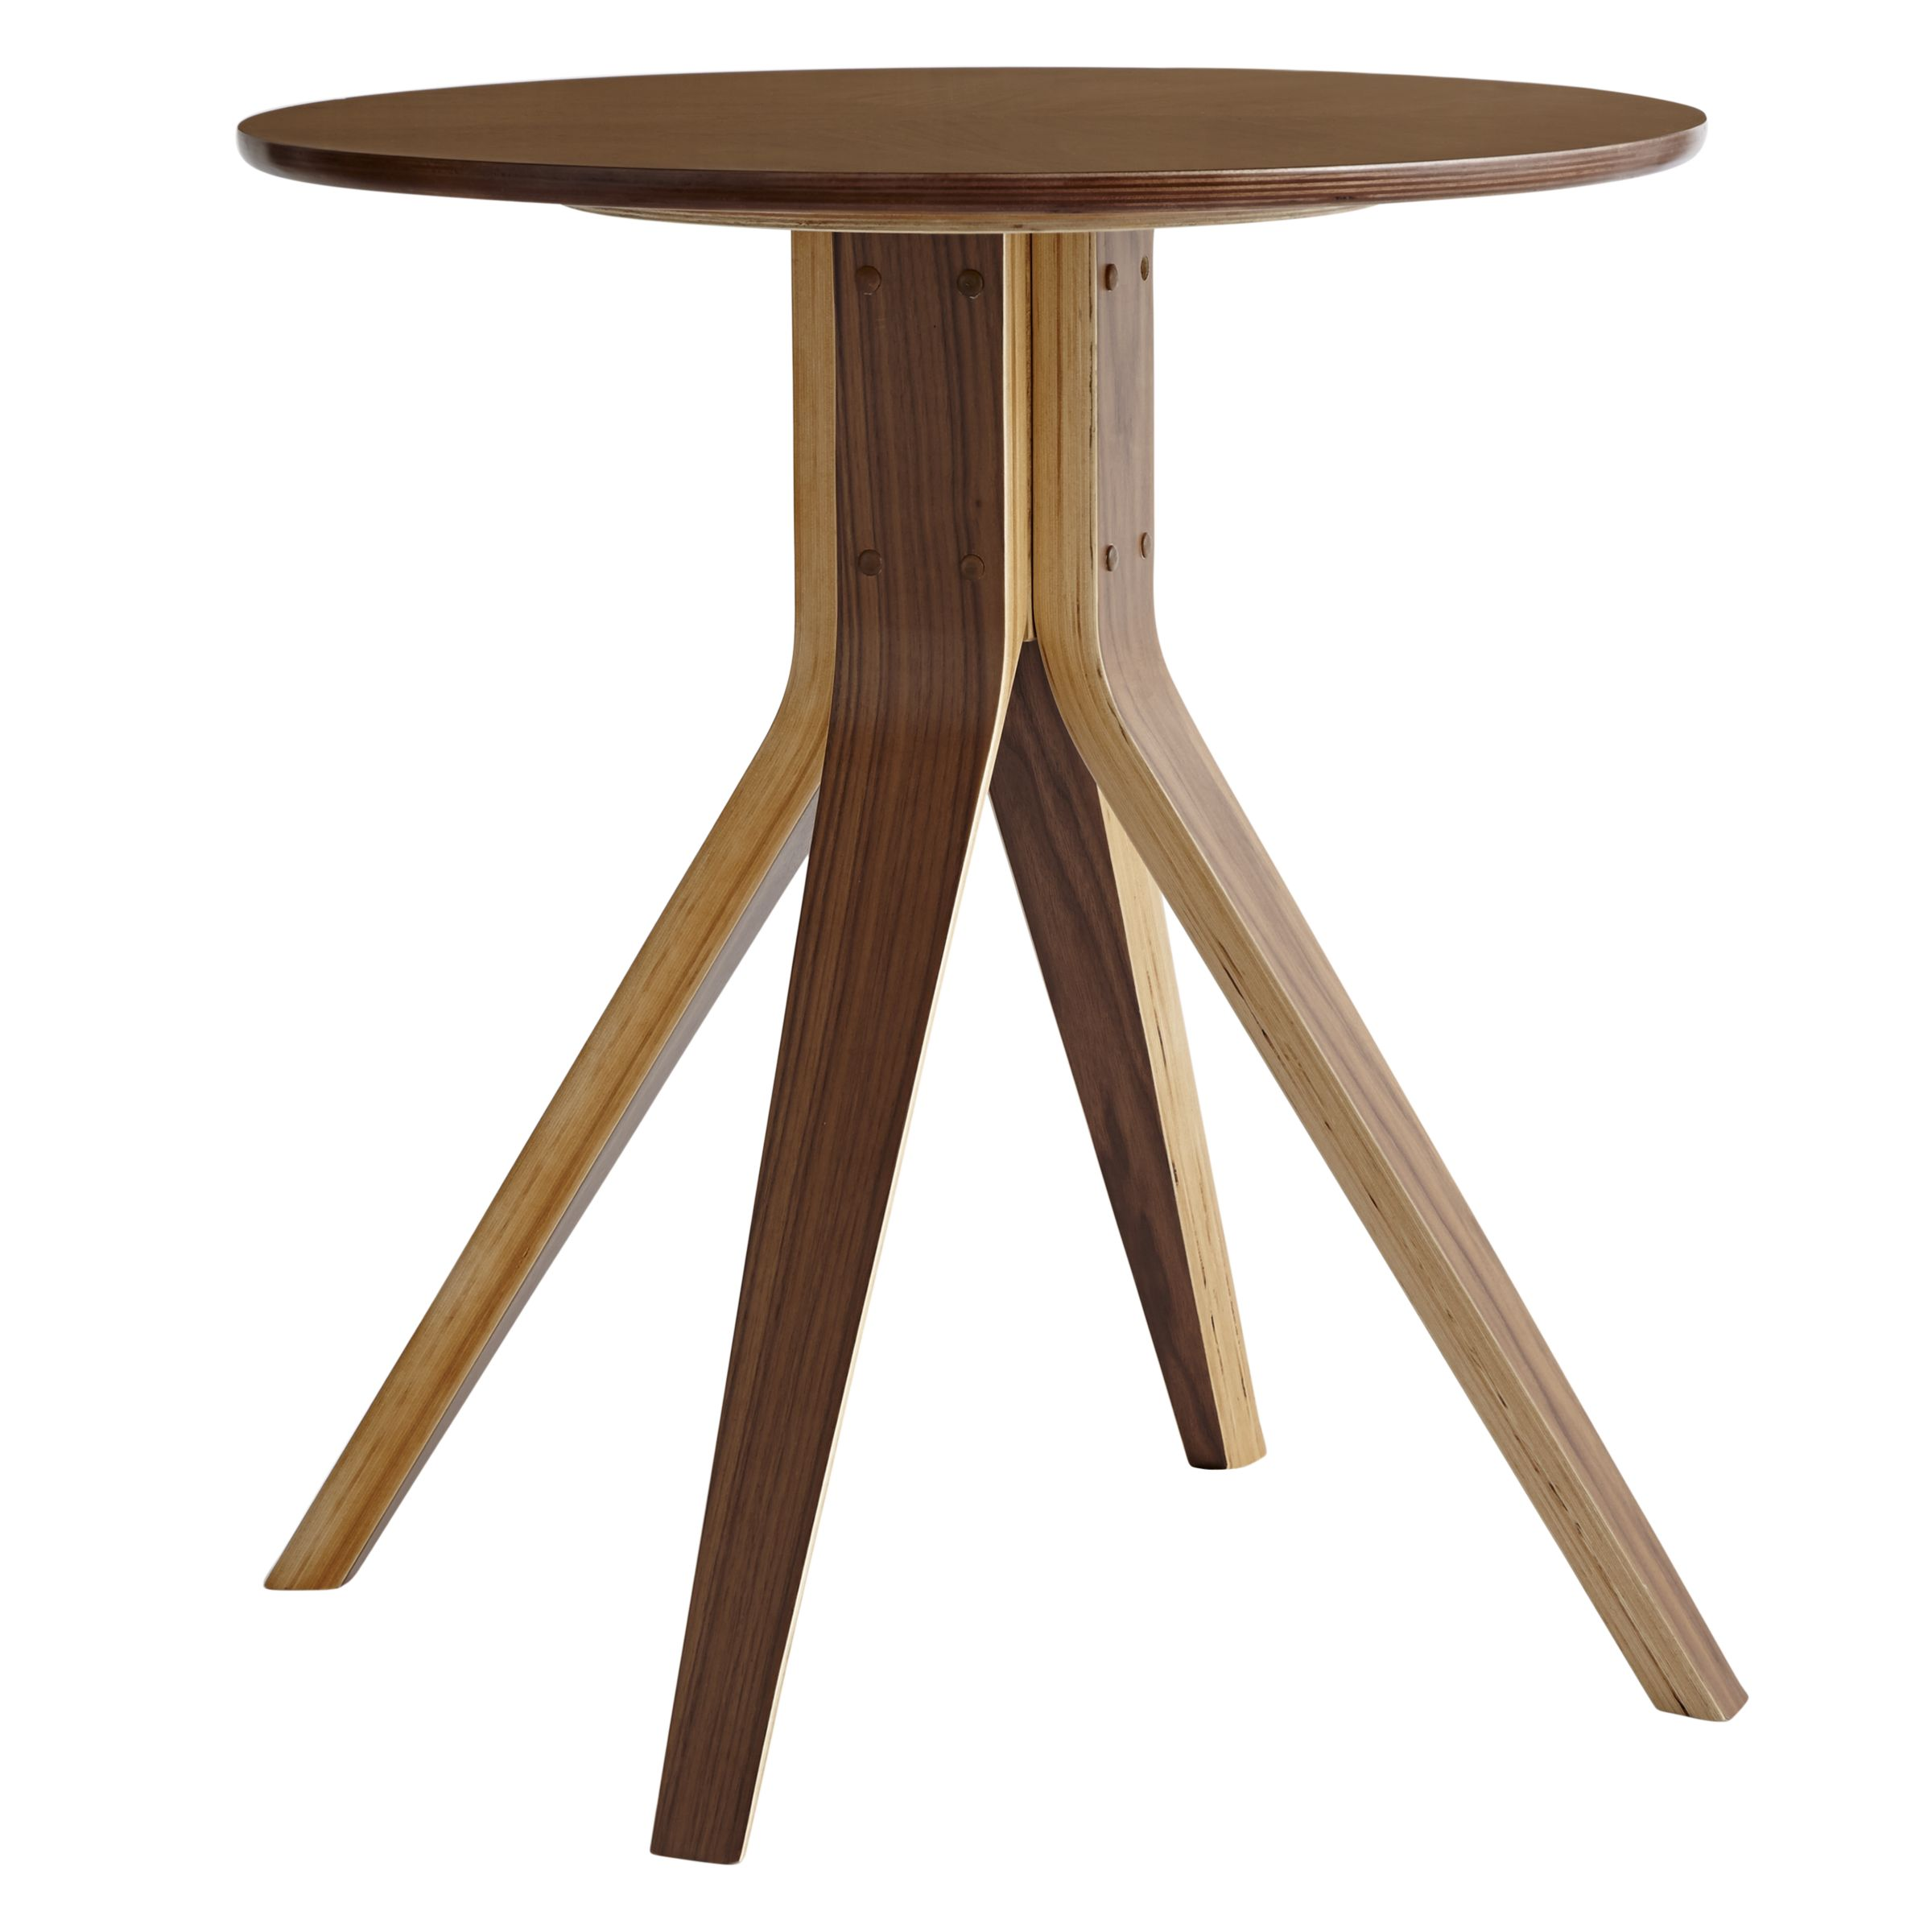 Wales & Wales for John Lewis John Lewis Radar 4-Seater Dining Table, Walnut